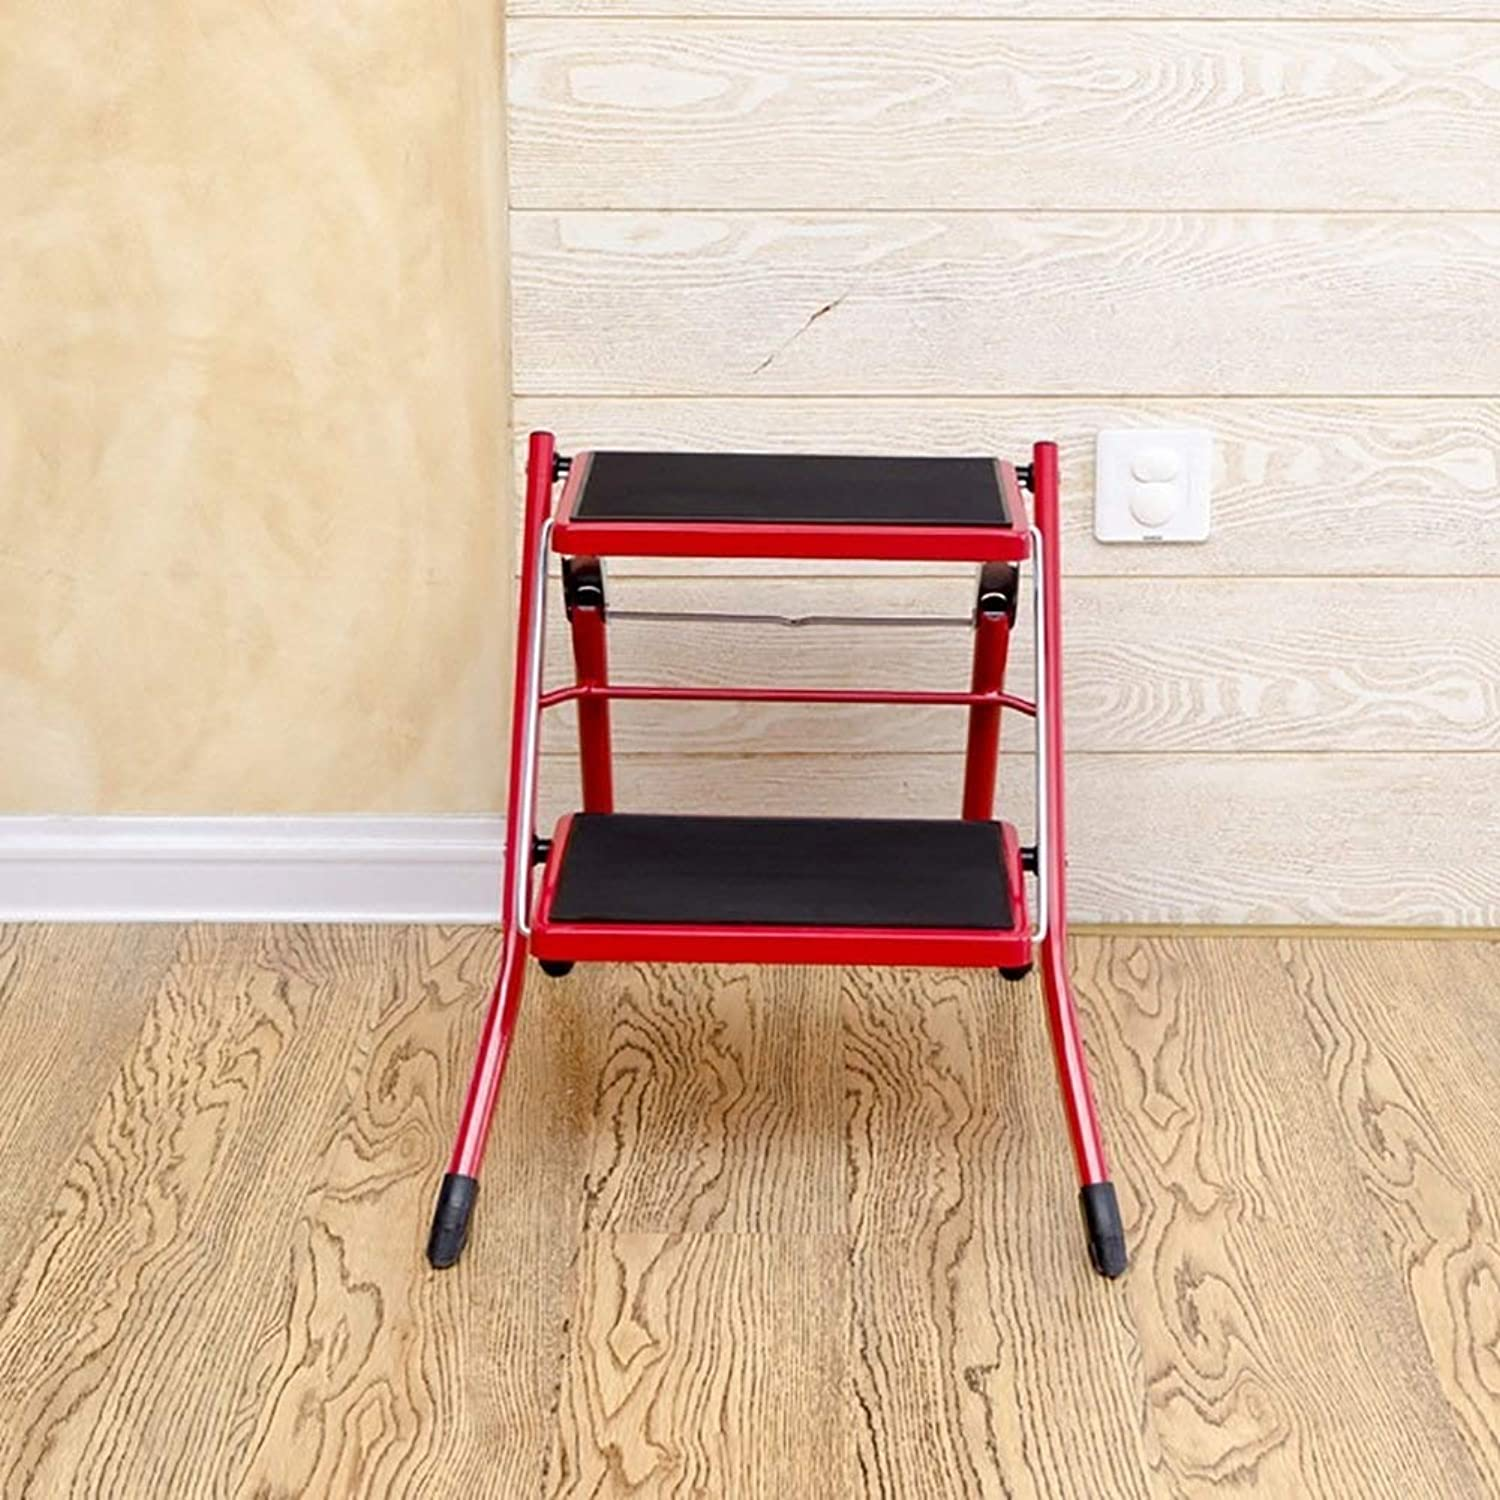 AINIYF Step Stool Stepladders Lightweight Folding Step Ladder With Handgrip Anti-Slip Sturdy And Wide Pedal Steel Ladder Mini-Stool 250lbs 19x16.5x16.3inches (color   Red)